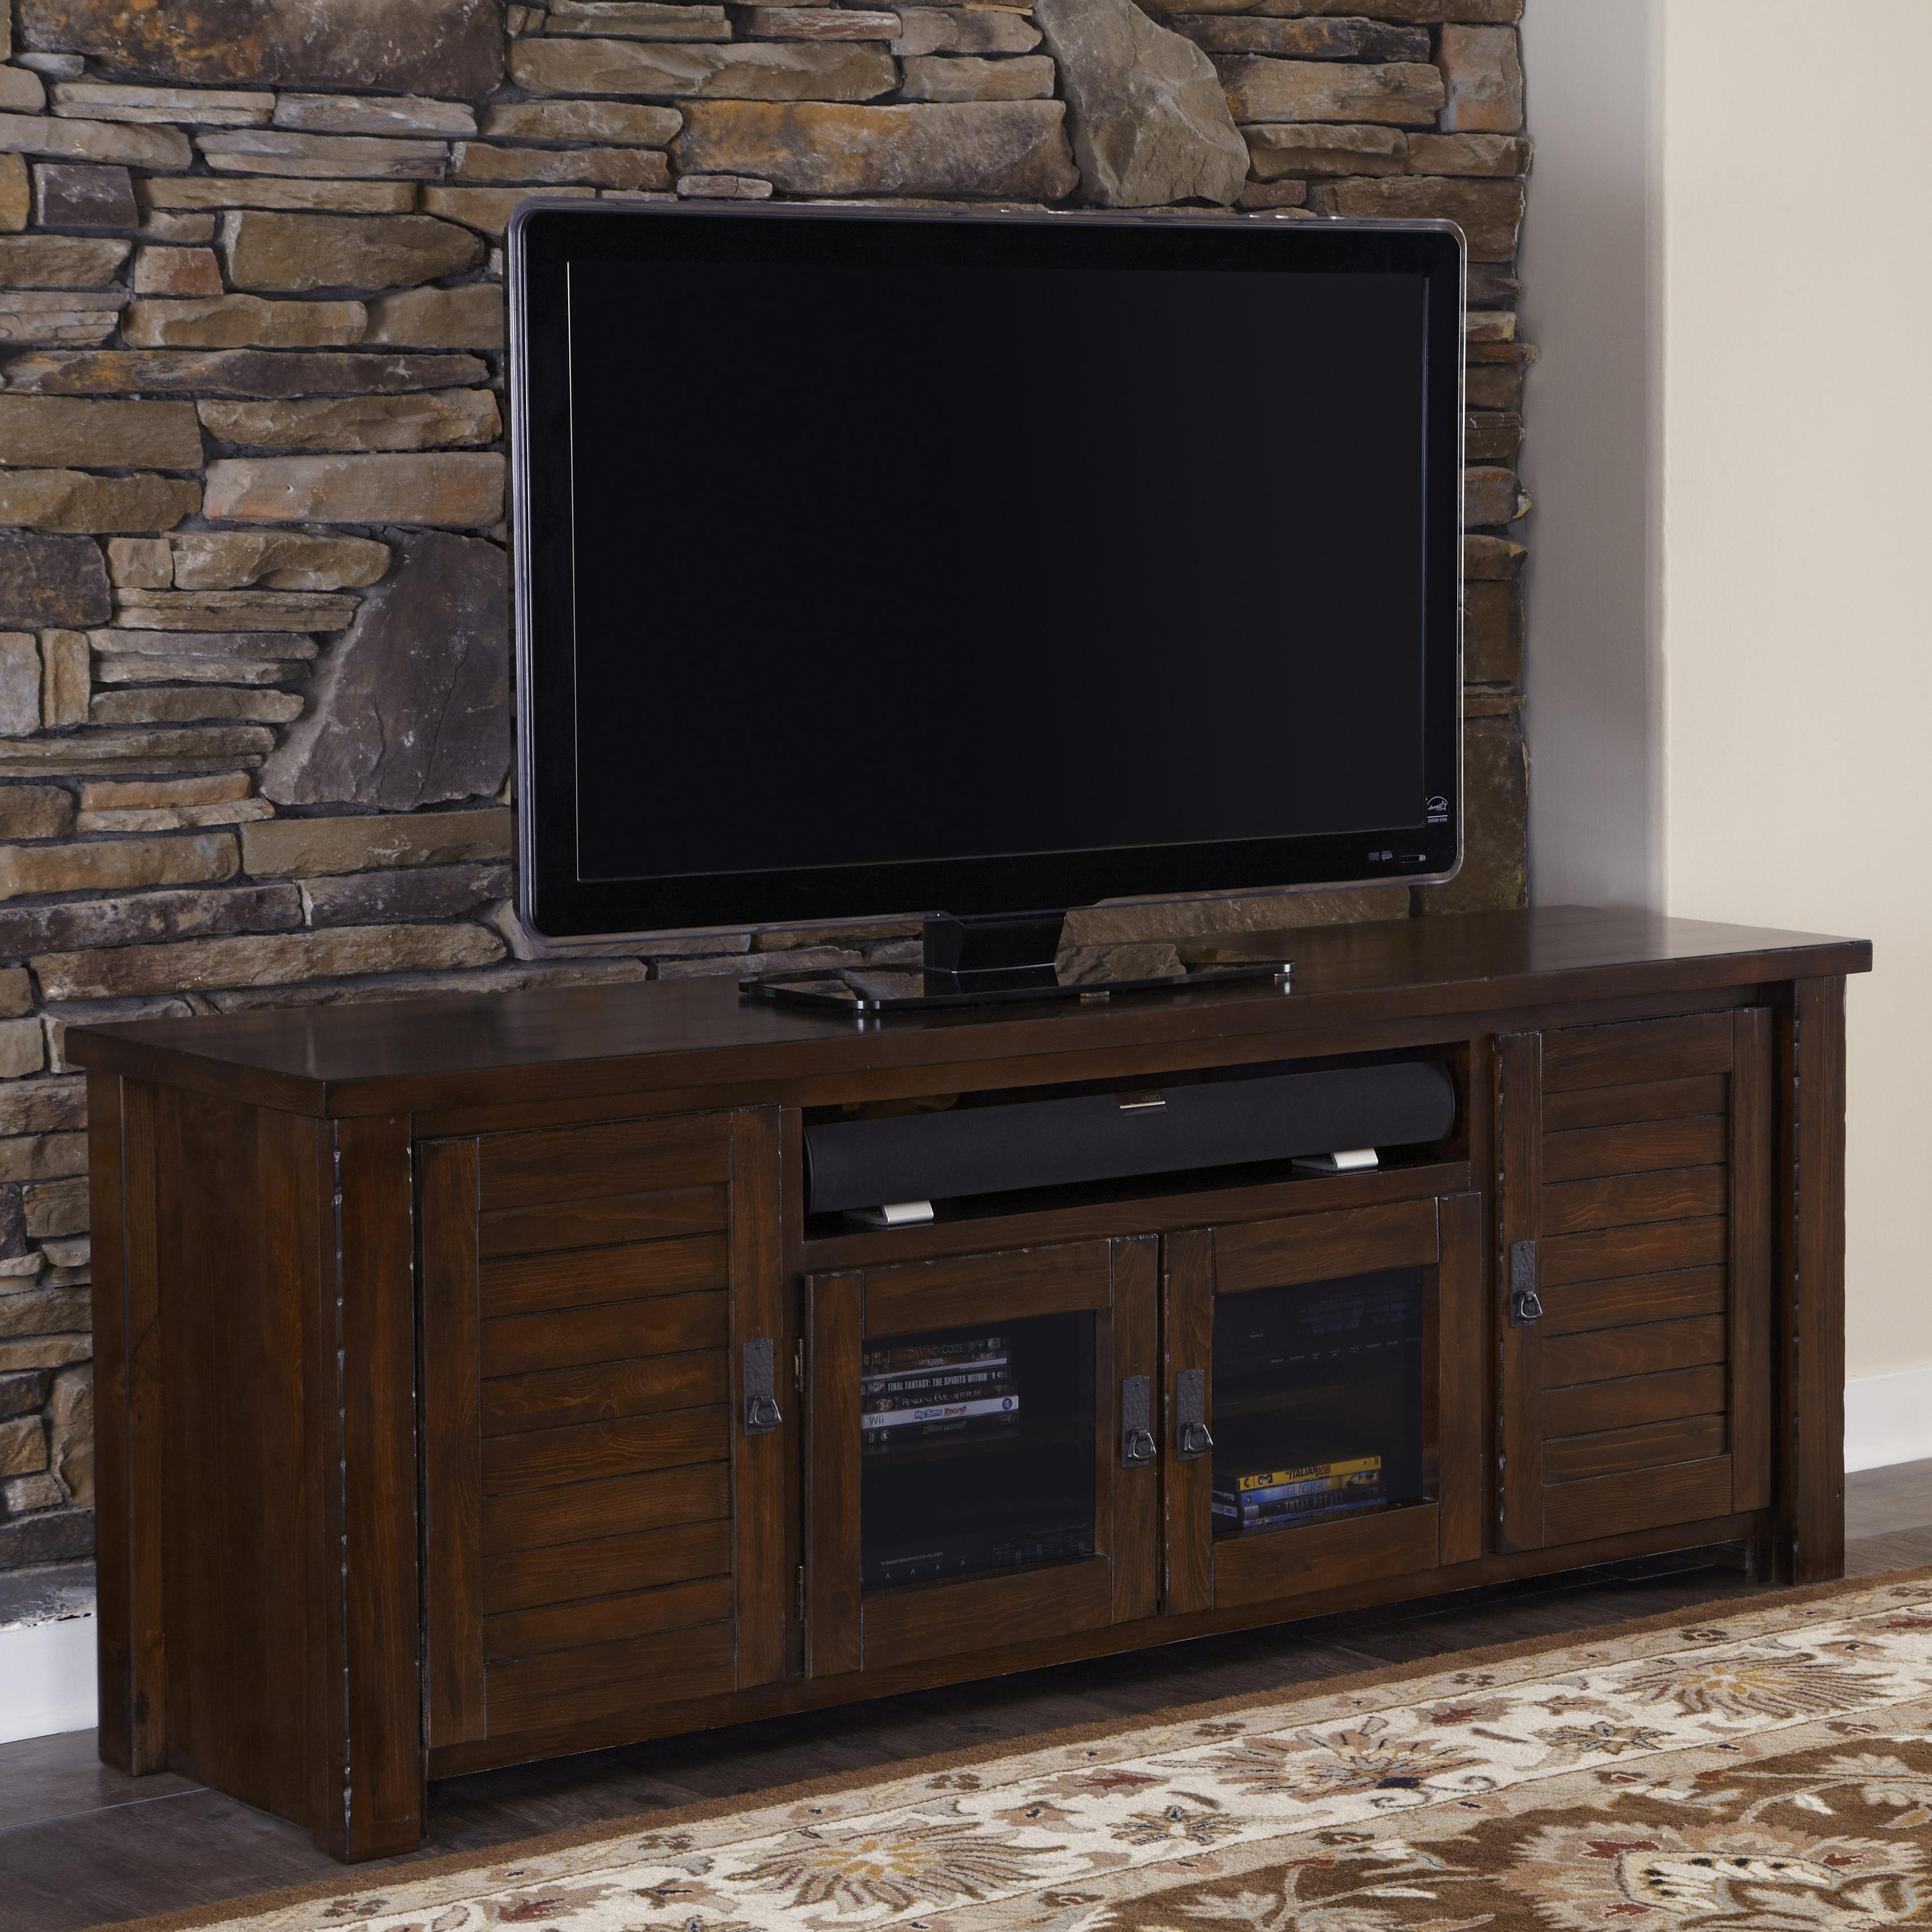 Progressive Furniture Trestlewood Rustic Pine 74 Console Miskelly Furniture Tv Stands